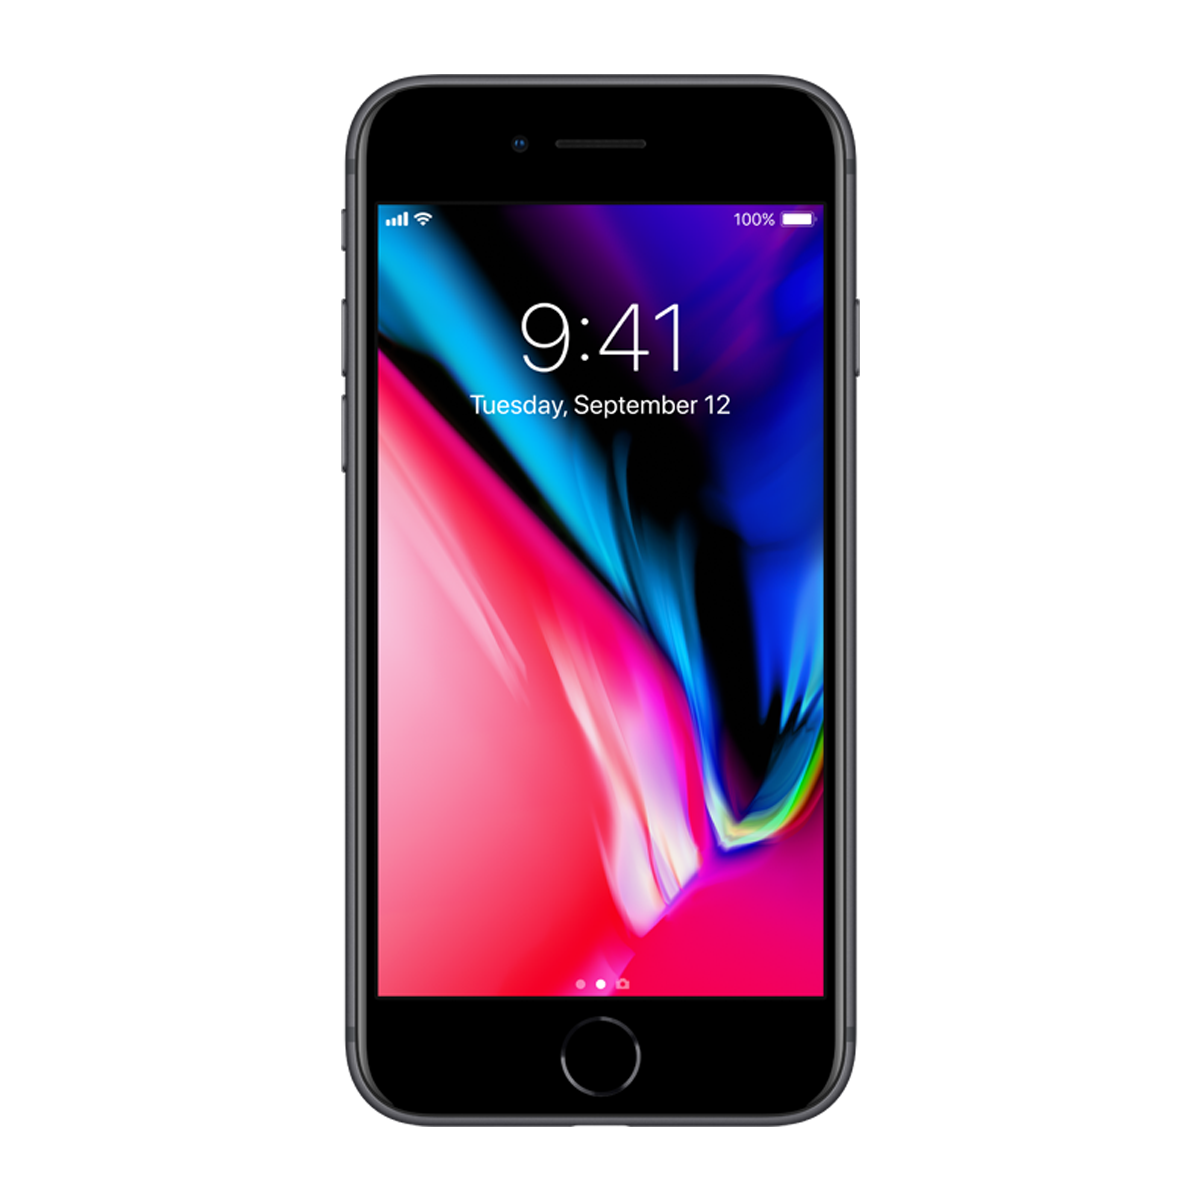 iphone 8 tone mp3 free download